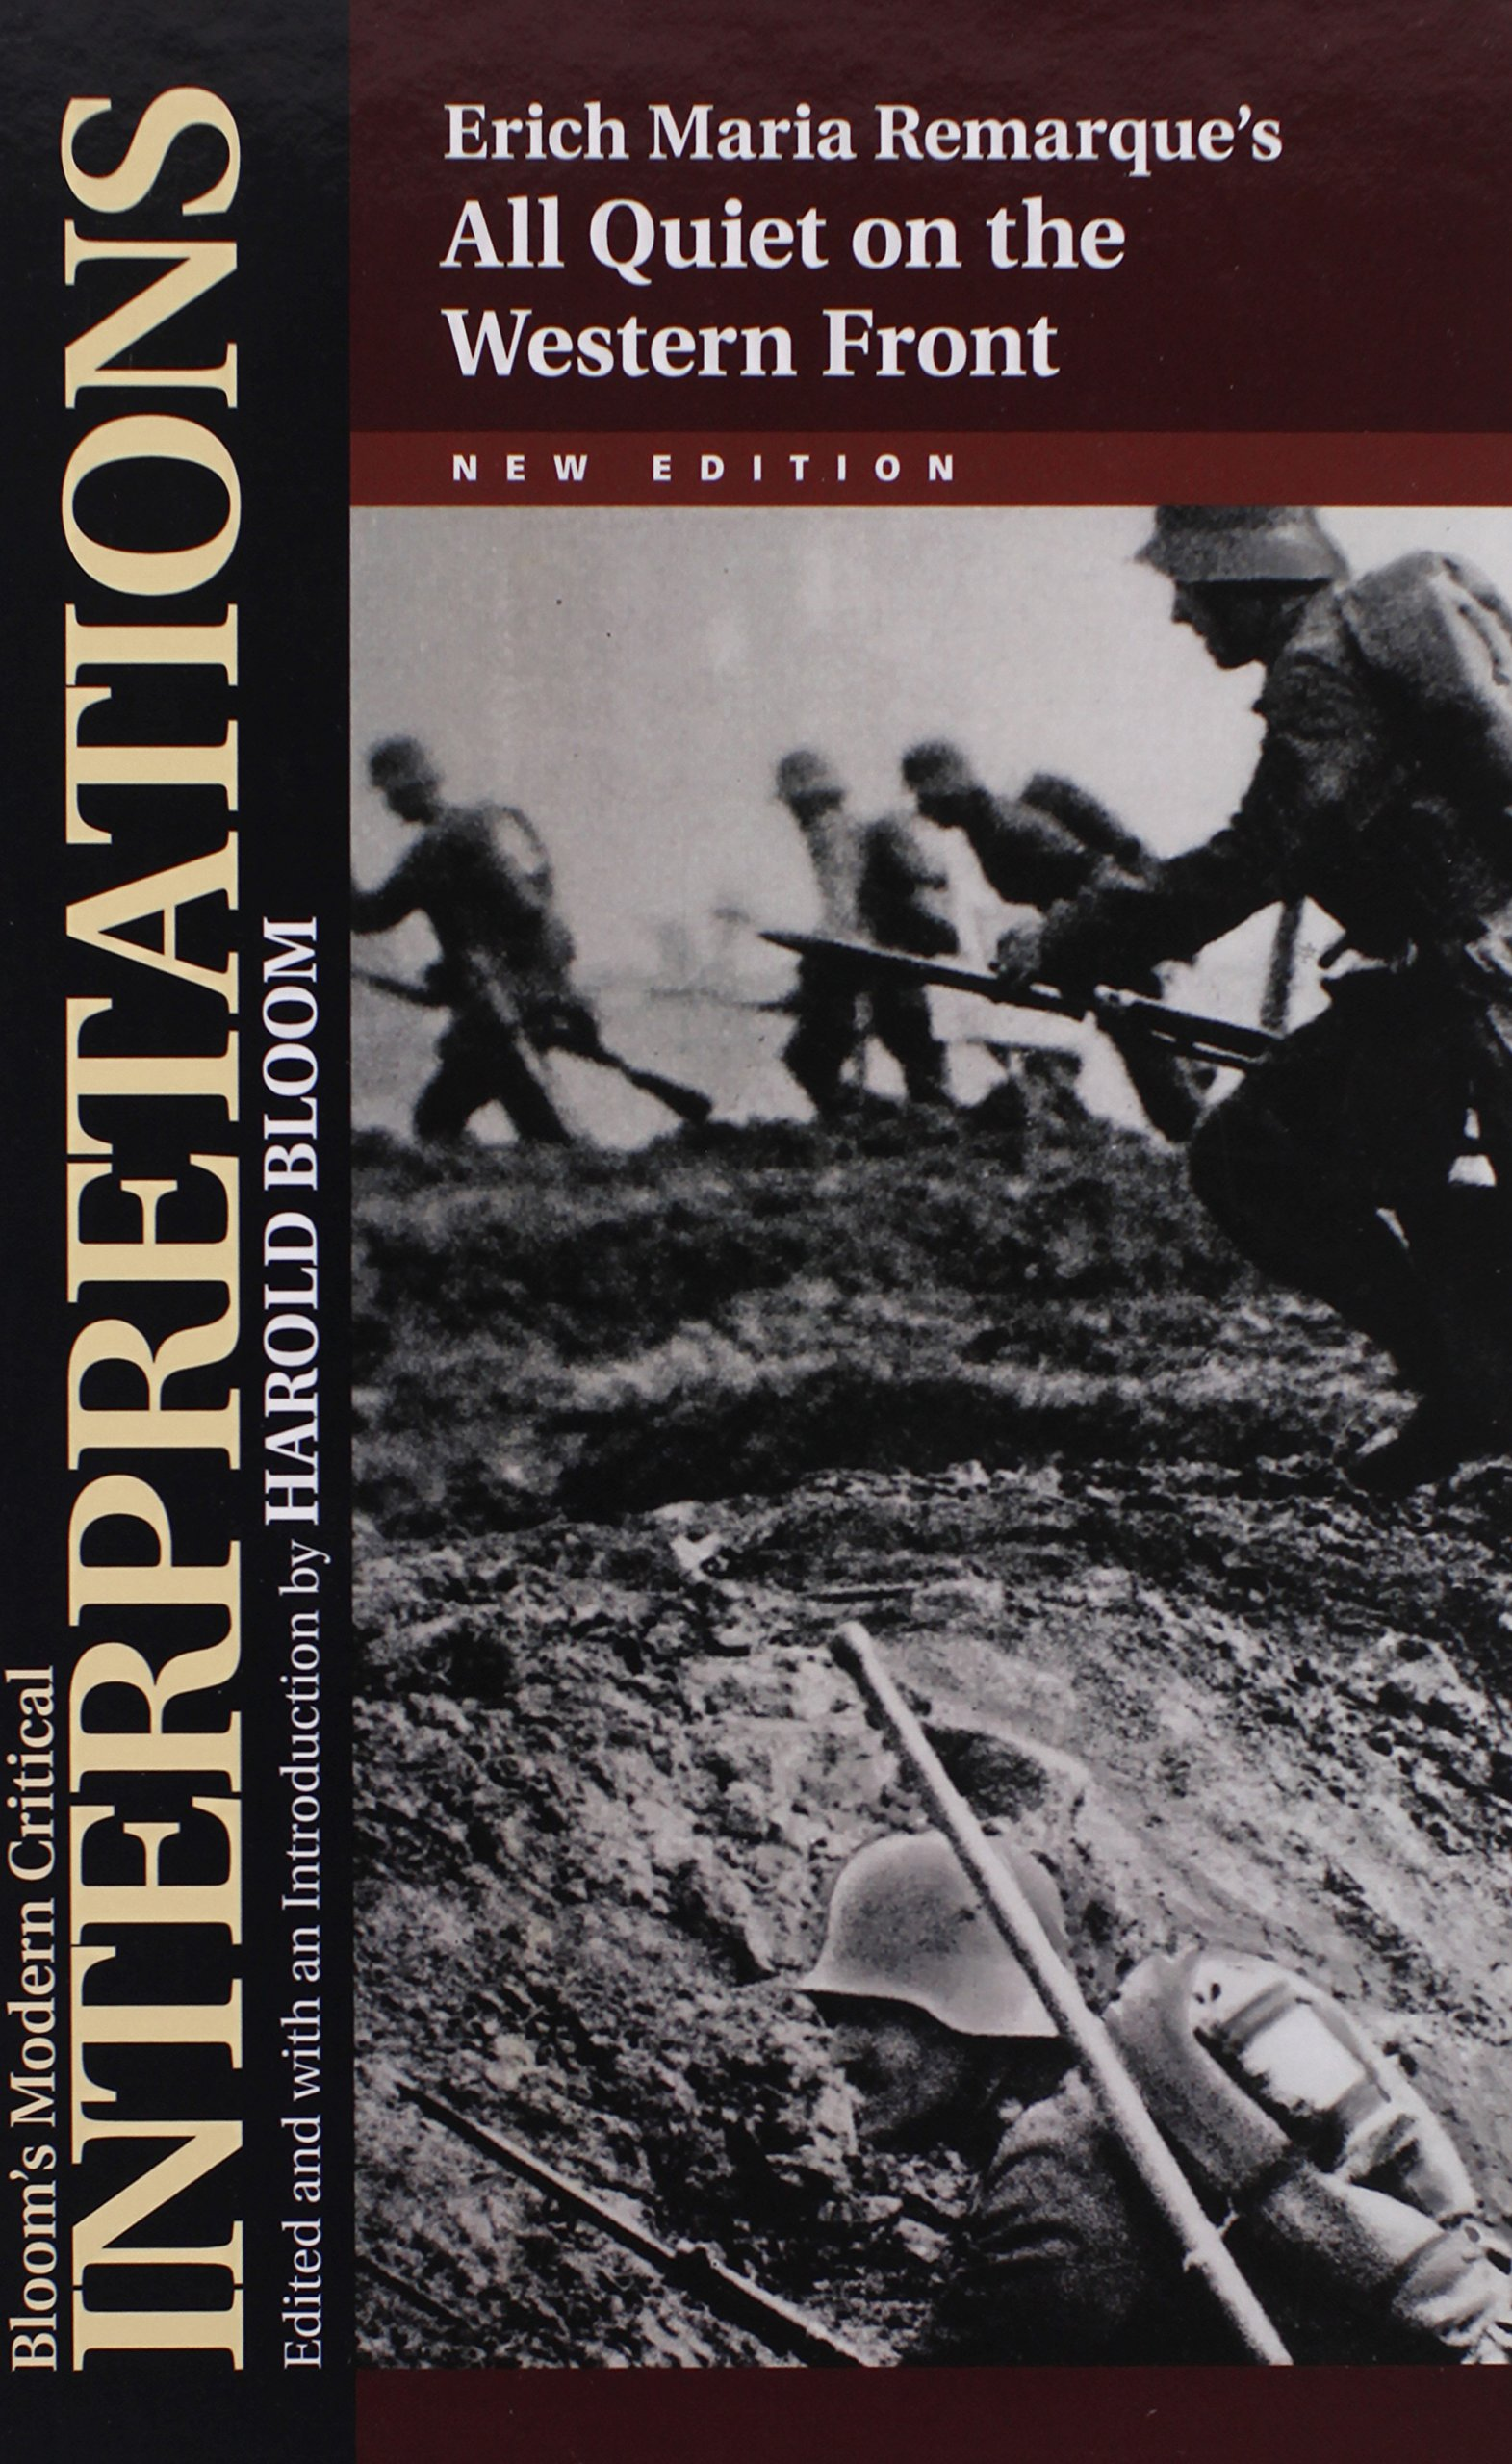 erich maria remarque s all quiet on the western front bloom s erich maria remarque s all quiet on the western front bloom s modern critical interpretations hardcover sterling professor of the humanities harold